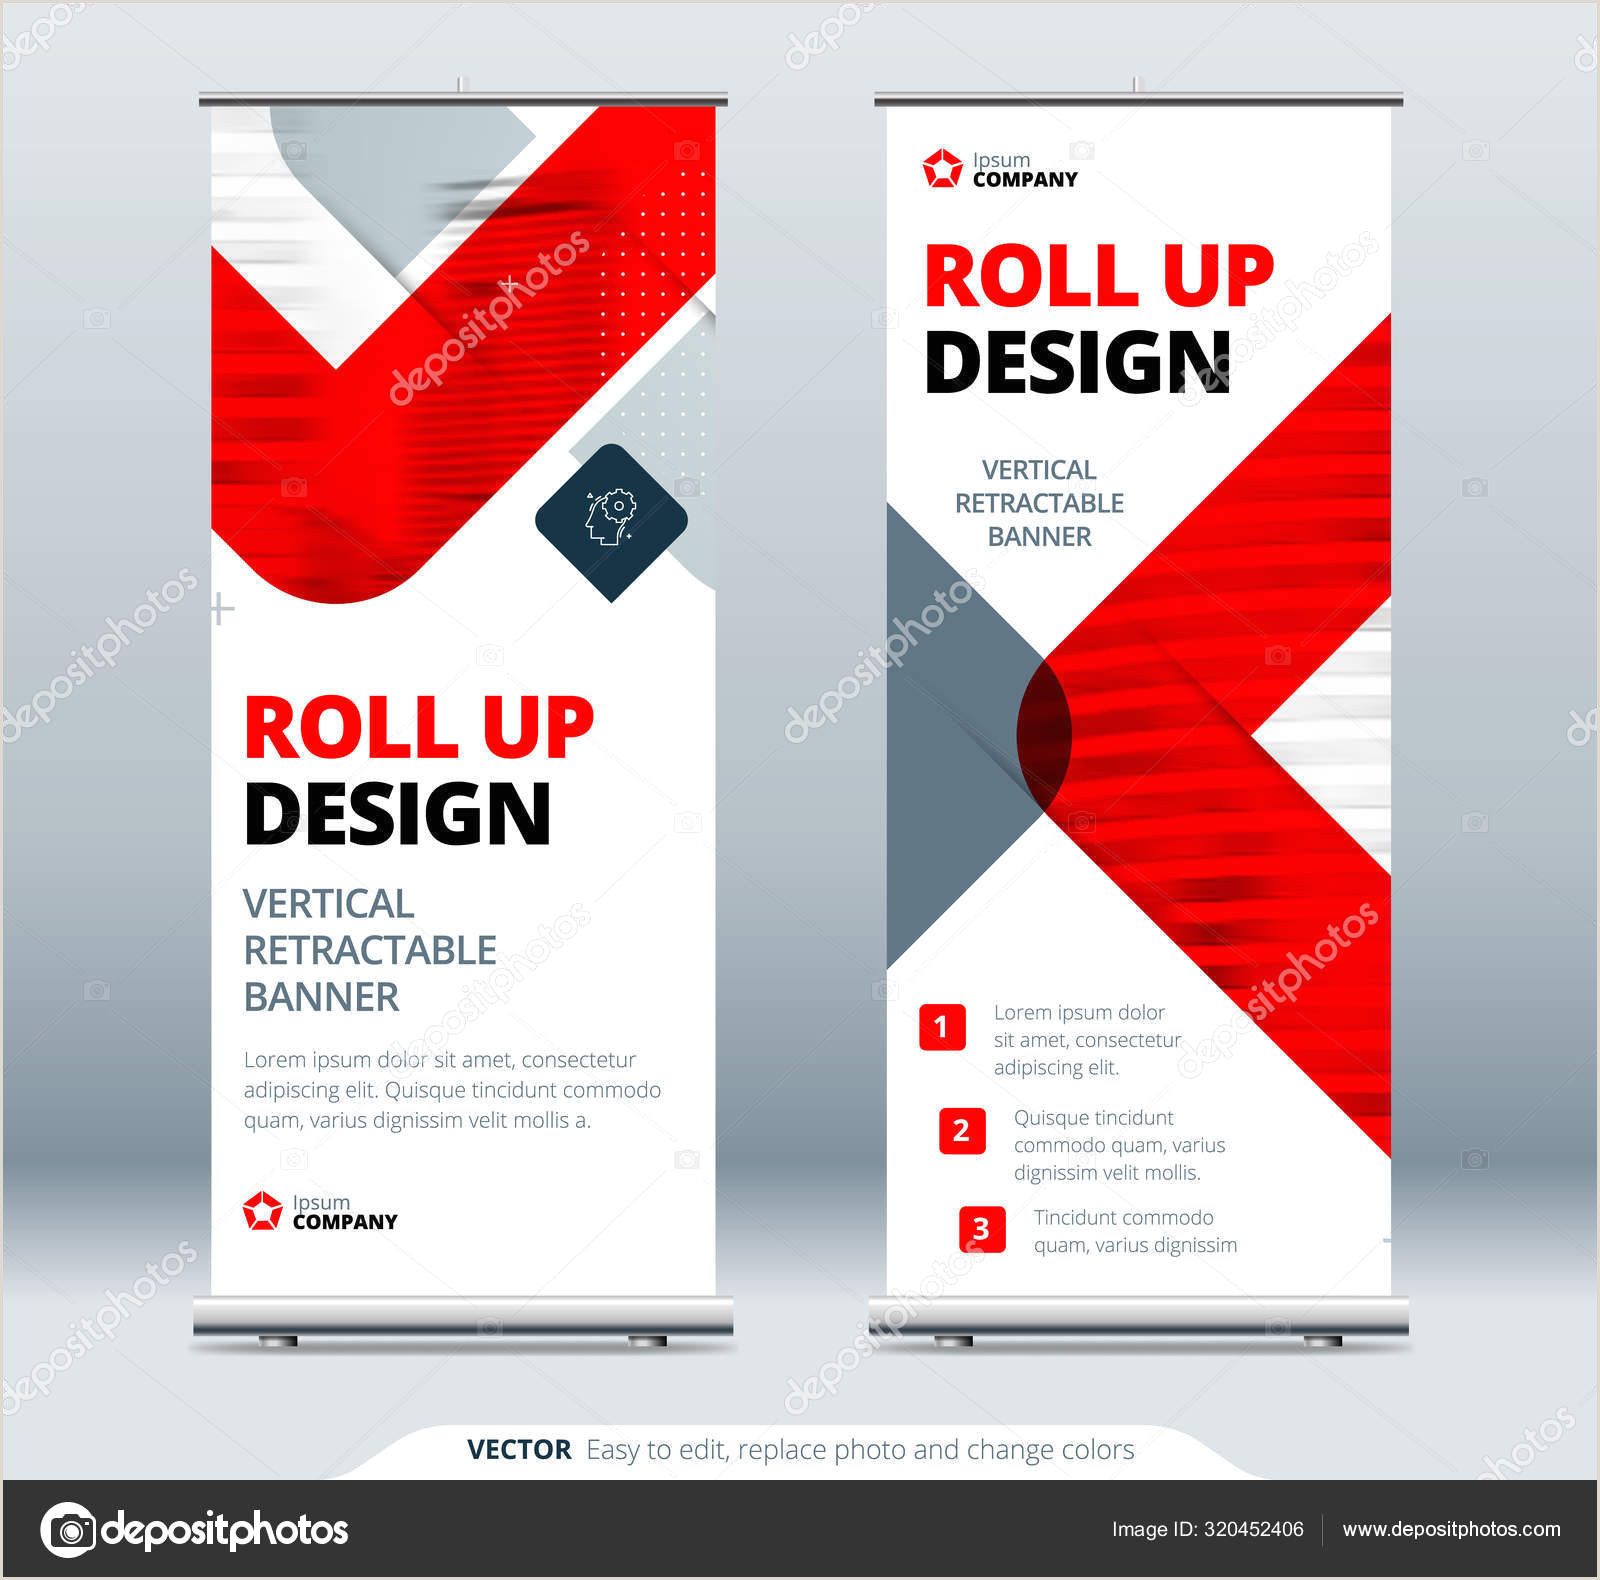 Retractable Banners And Stands Business Roll Up Banner Stand Abstract Roll Up Background For Presentation Vertical Roll Up X Stand X Banner Exhibition Retractable Banner Stand